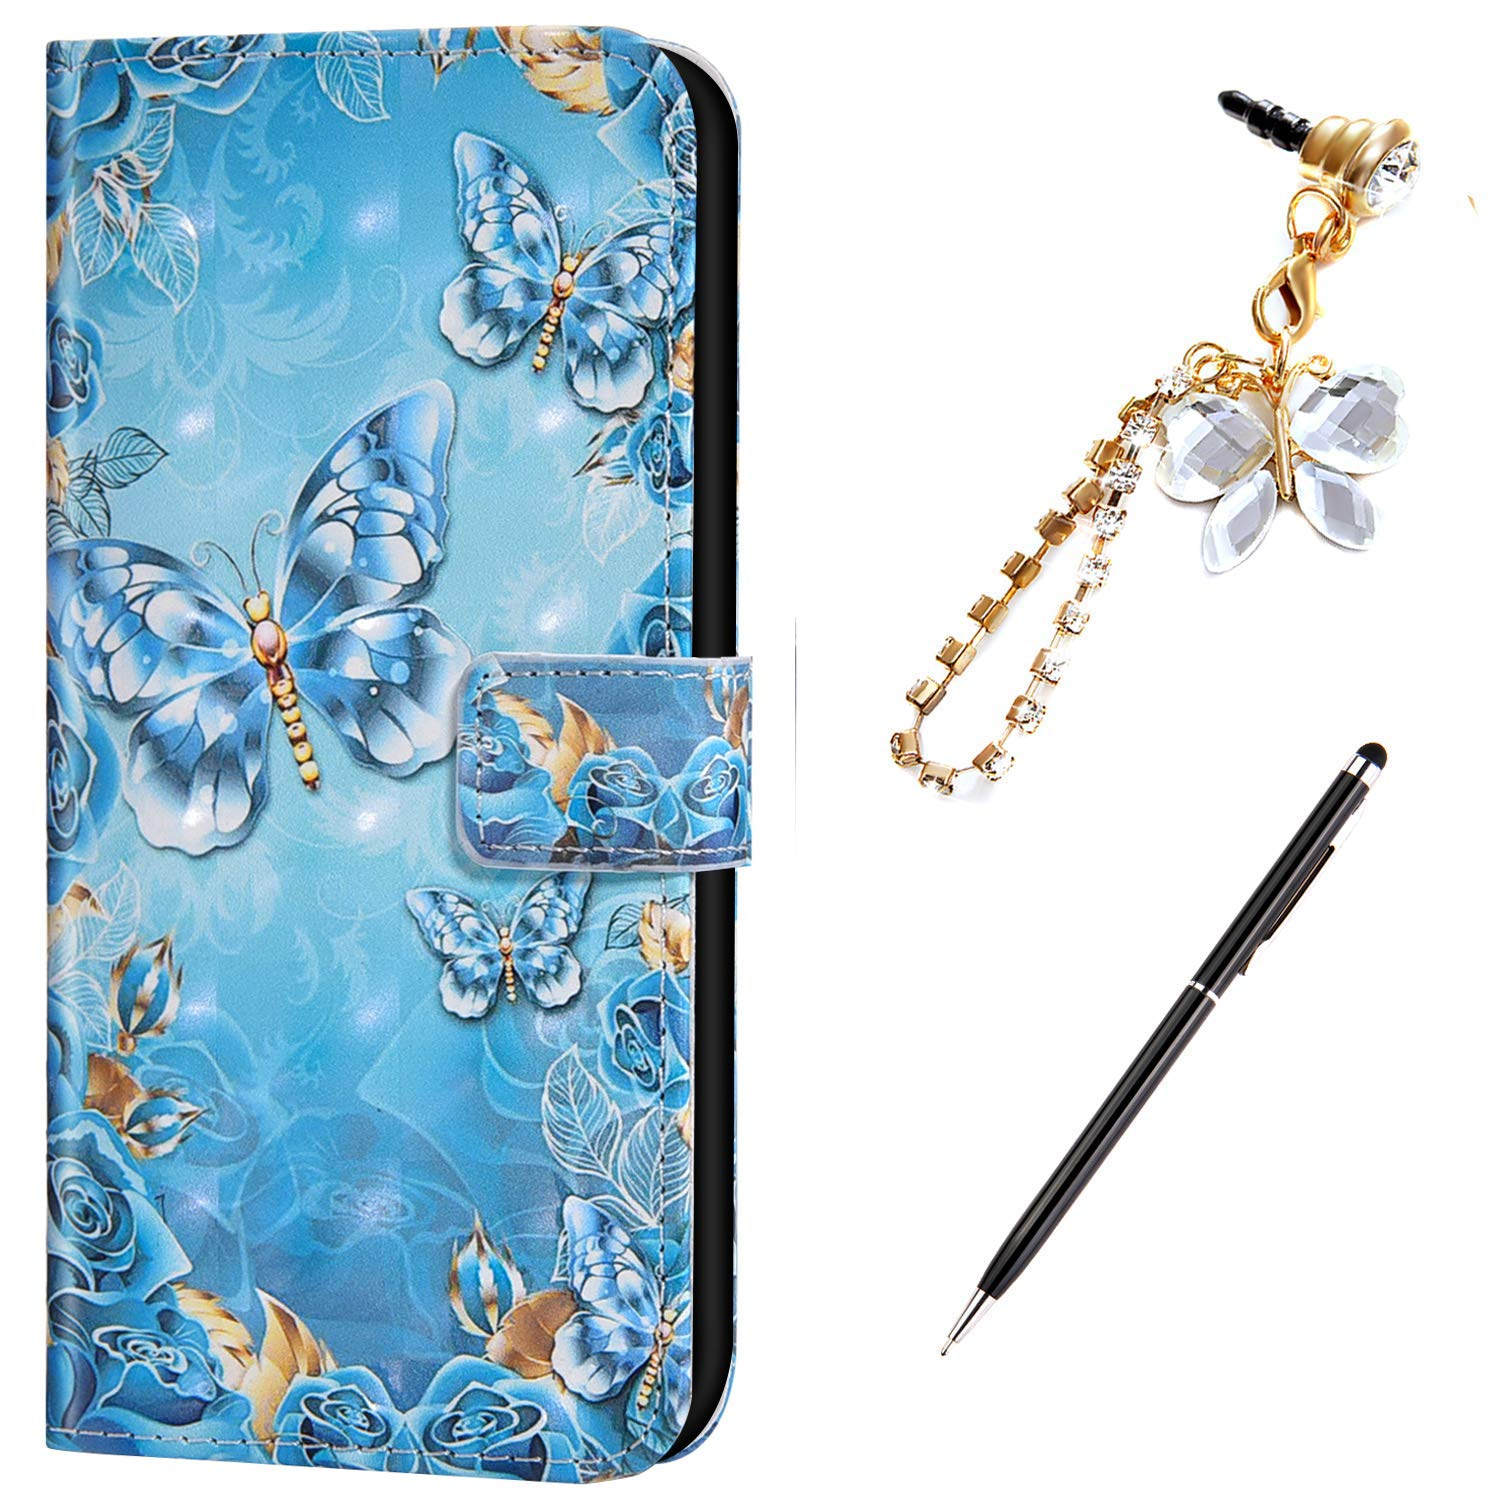 Case for Galaxy Note 10 Cover,3D Colorful Marble Painted Pattern Flip Wallet Case PU Leather Stand Card Slots Protective Case Cover + Dust Plug Stylus for Galaxy Note 10 Wallet Case,Blue Butterfly by ikasus